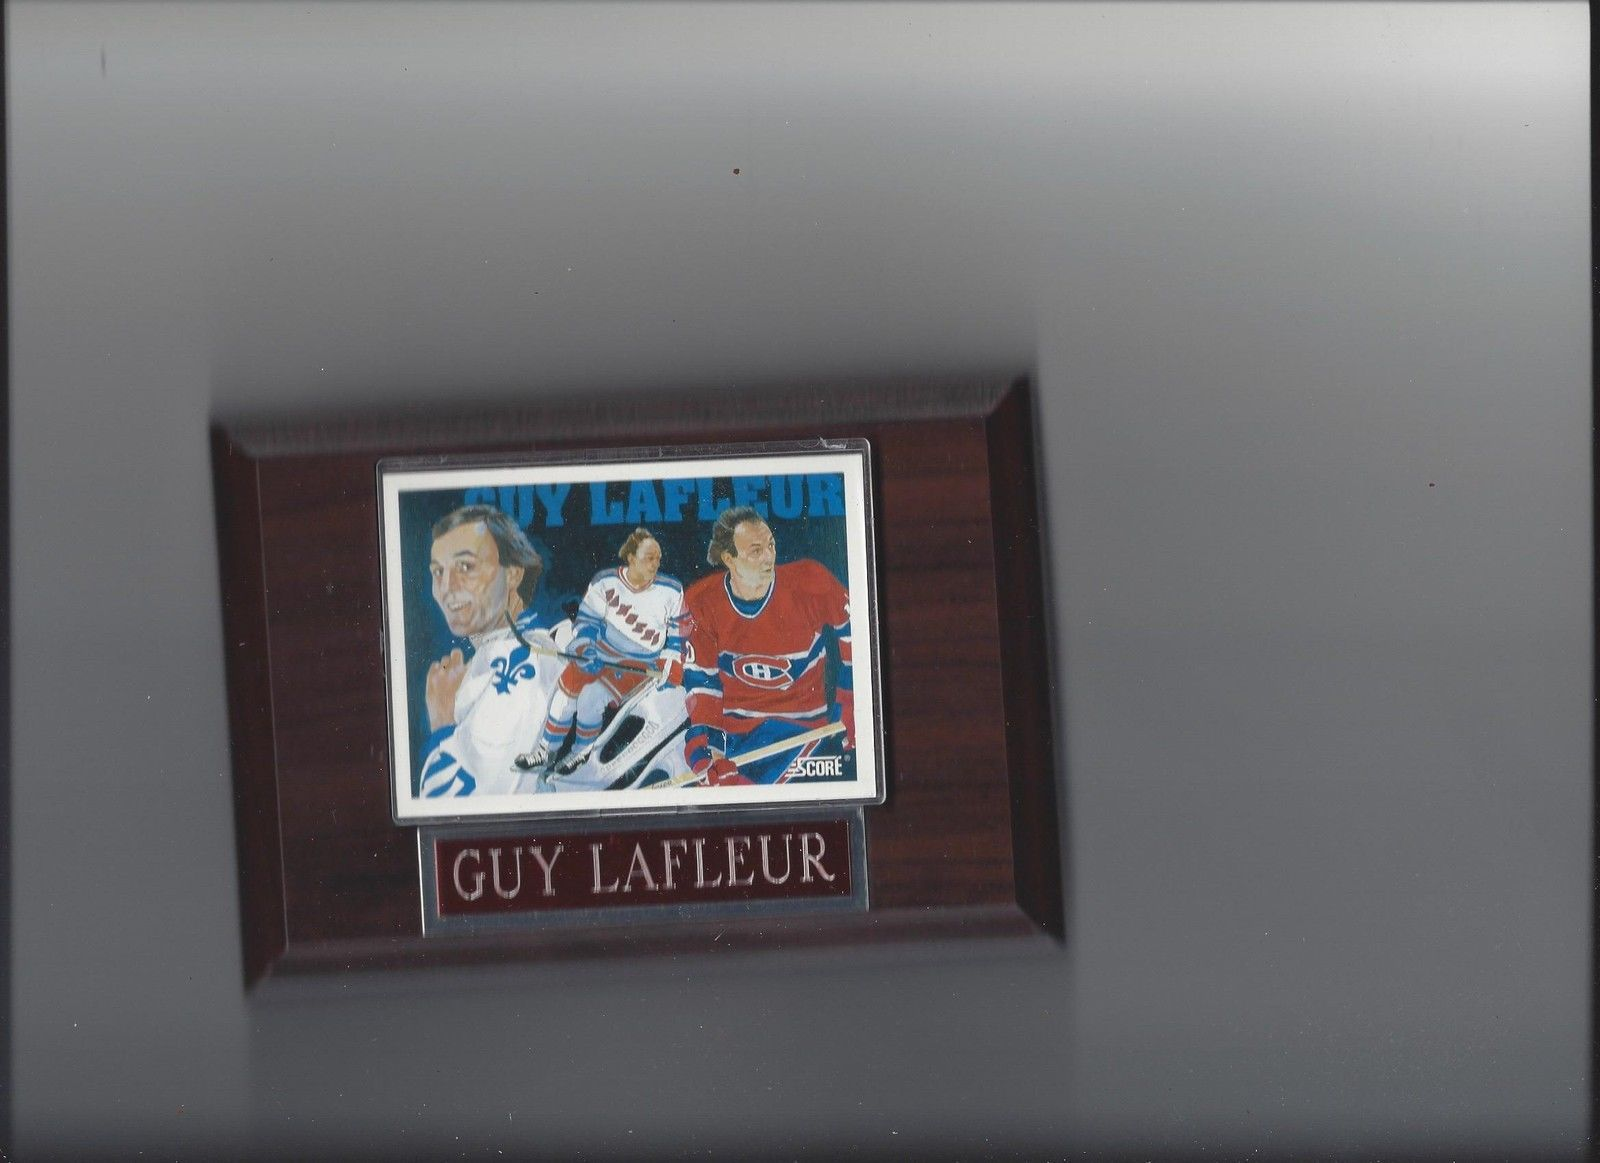 Primary image for GUY LAFLEUR PLAQUE MONTREAL CANADIENS HOCKEY NHL NY NEW YORK RANGERS LEAFS